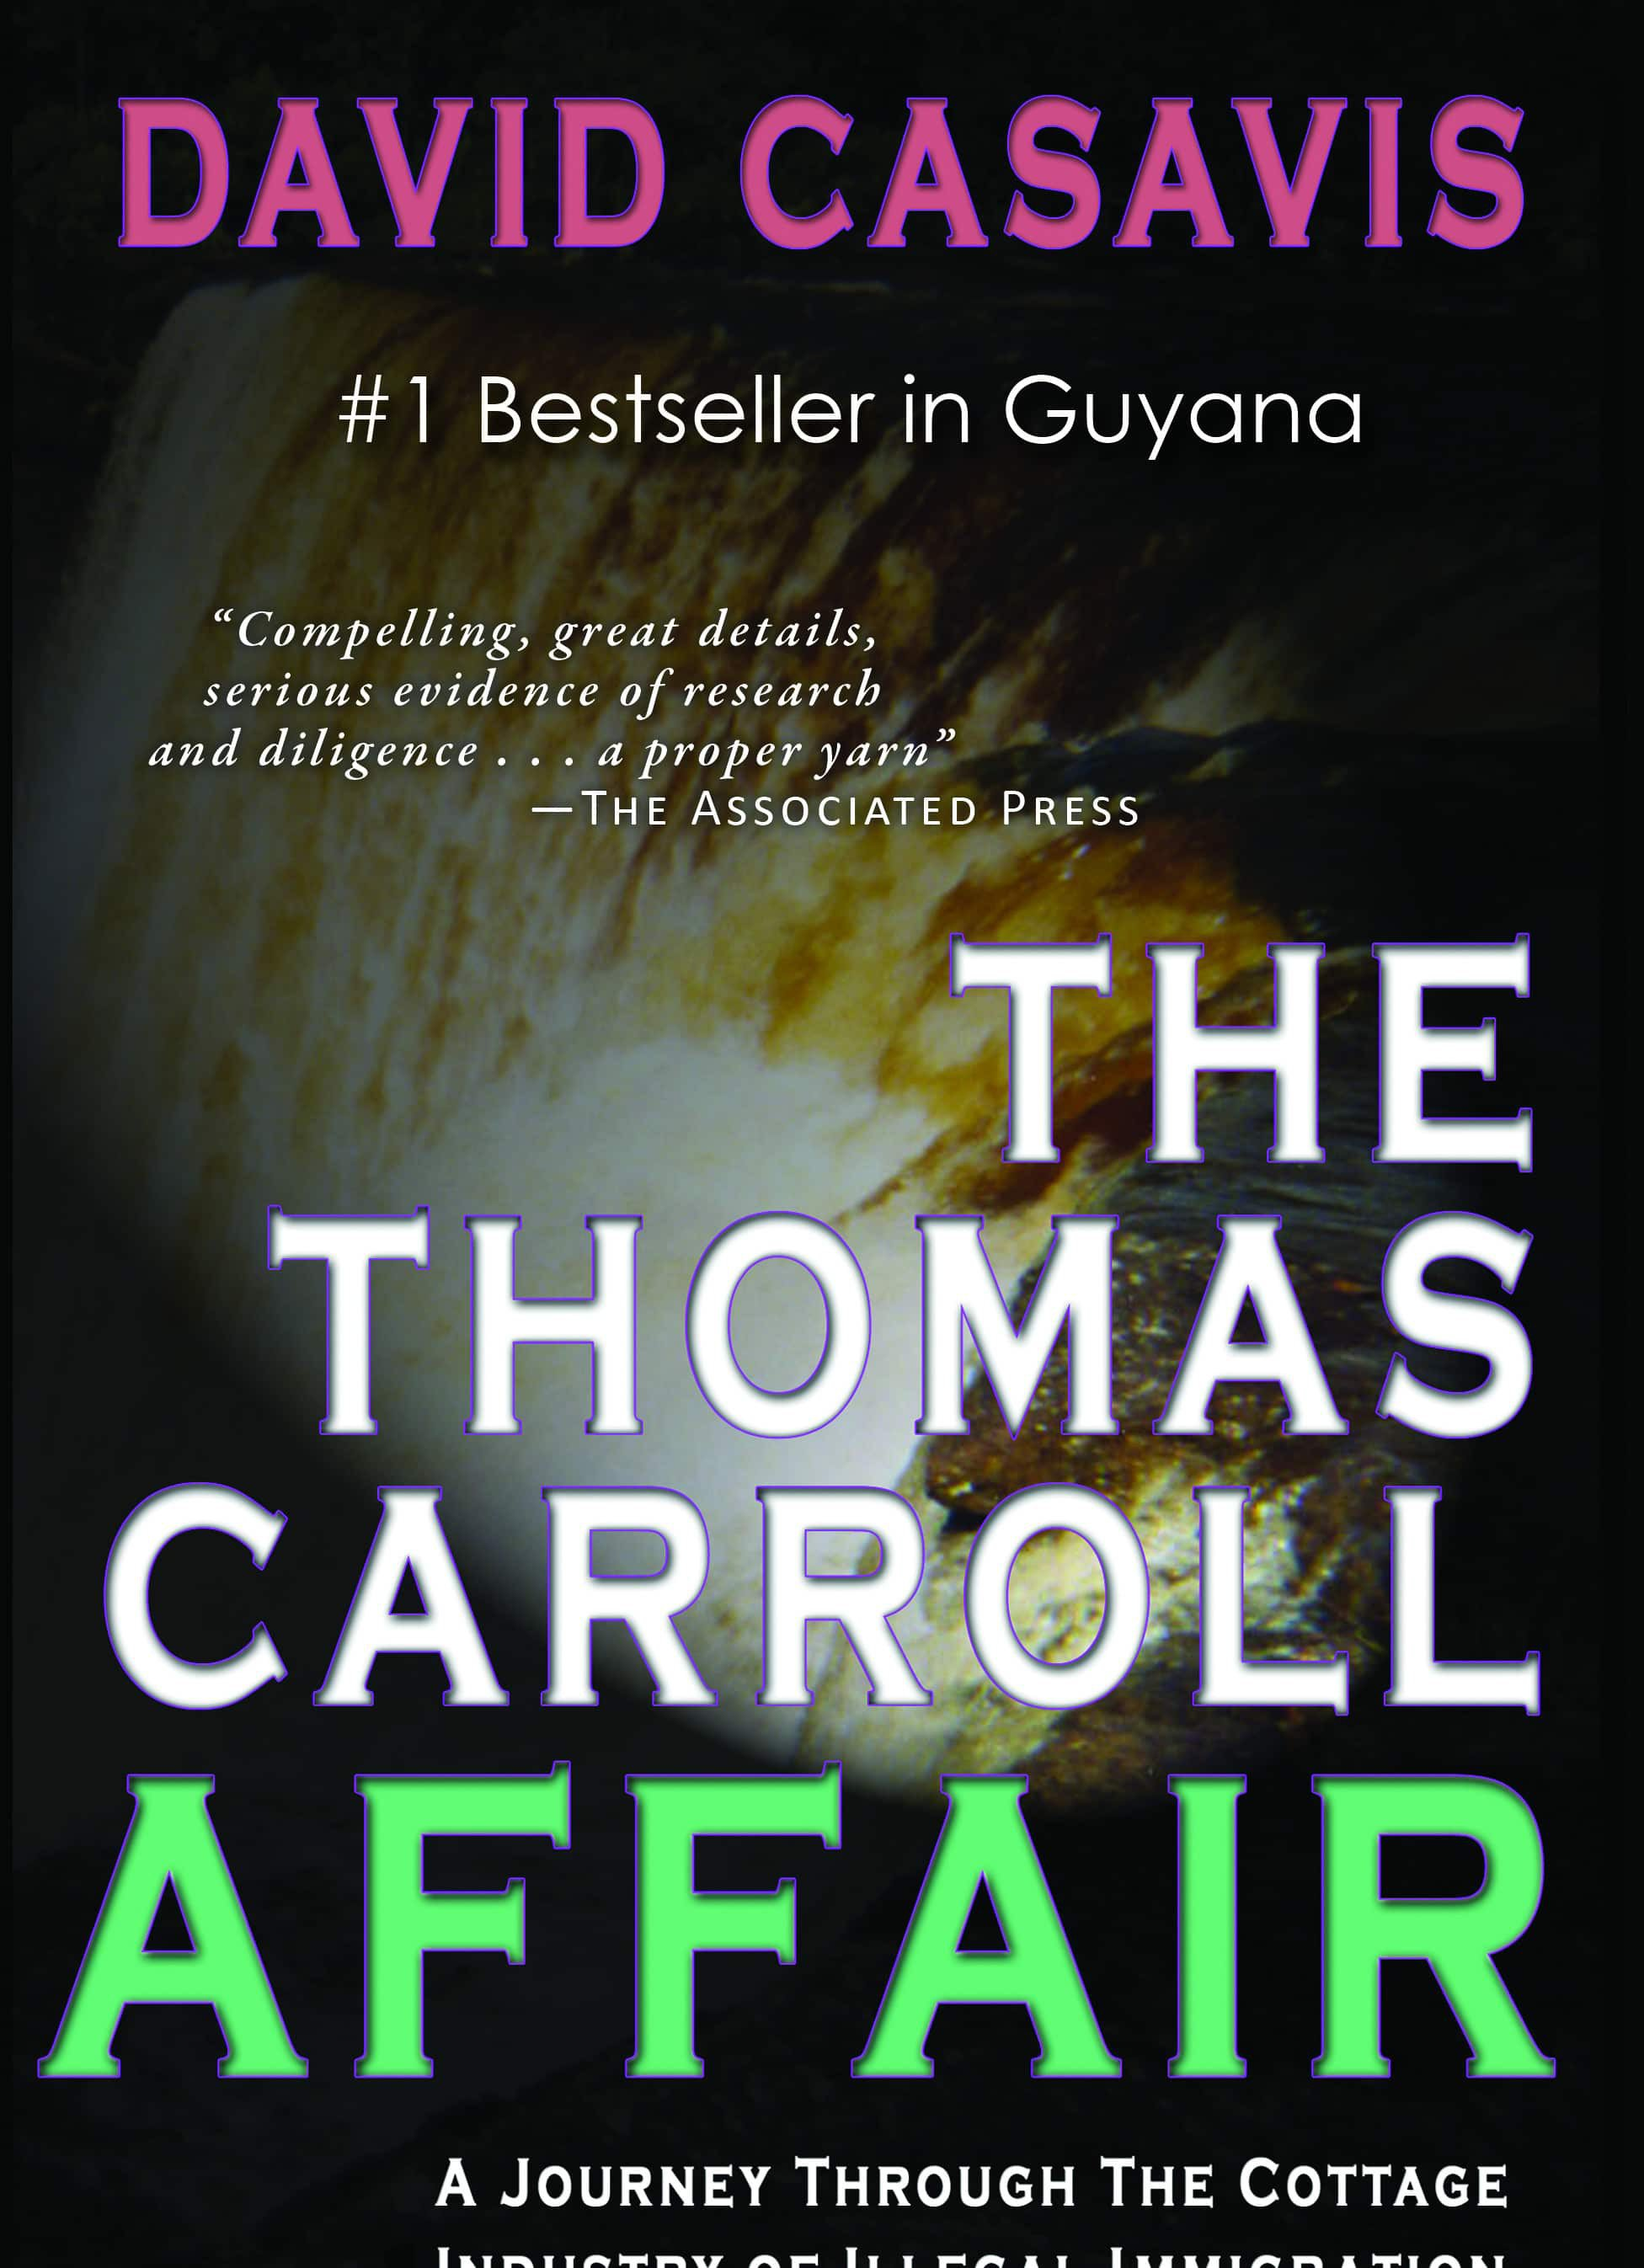 The Thomas Carroll Affair